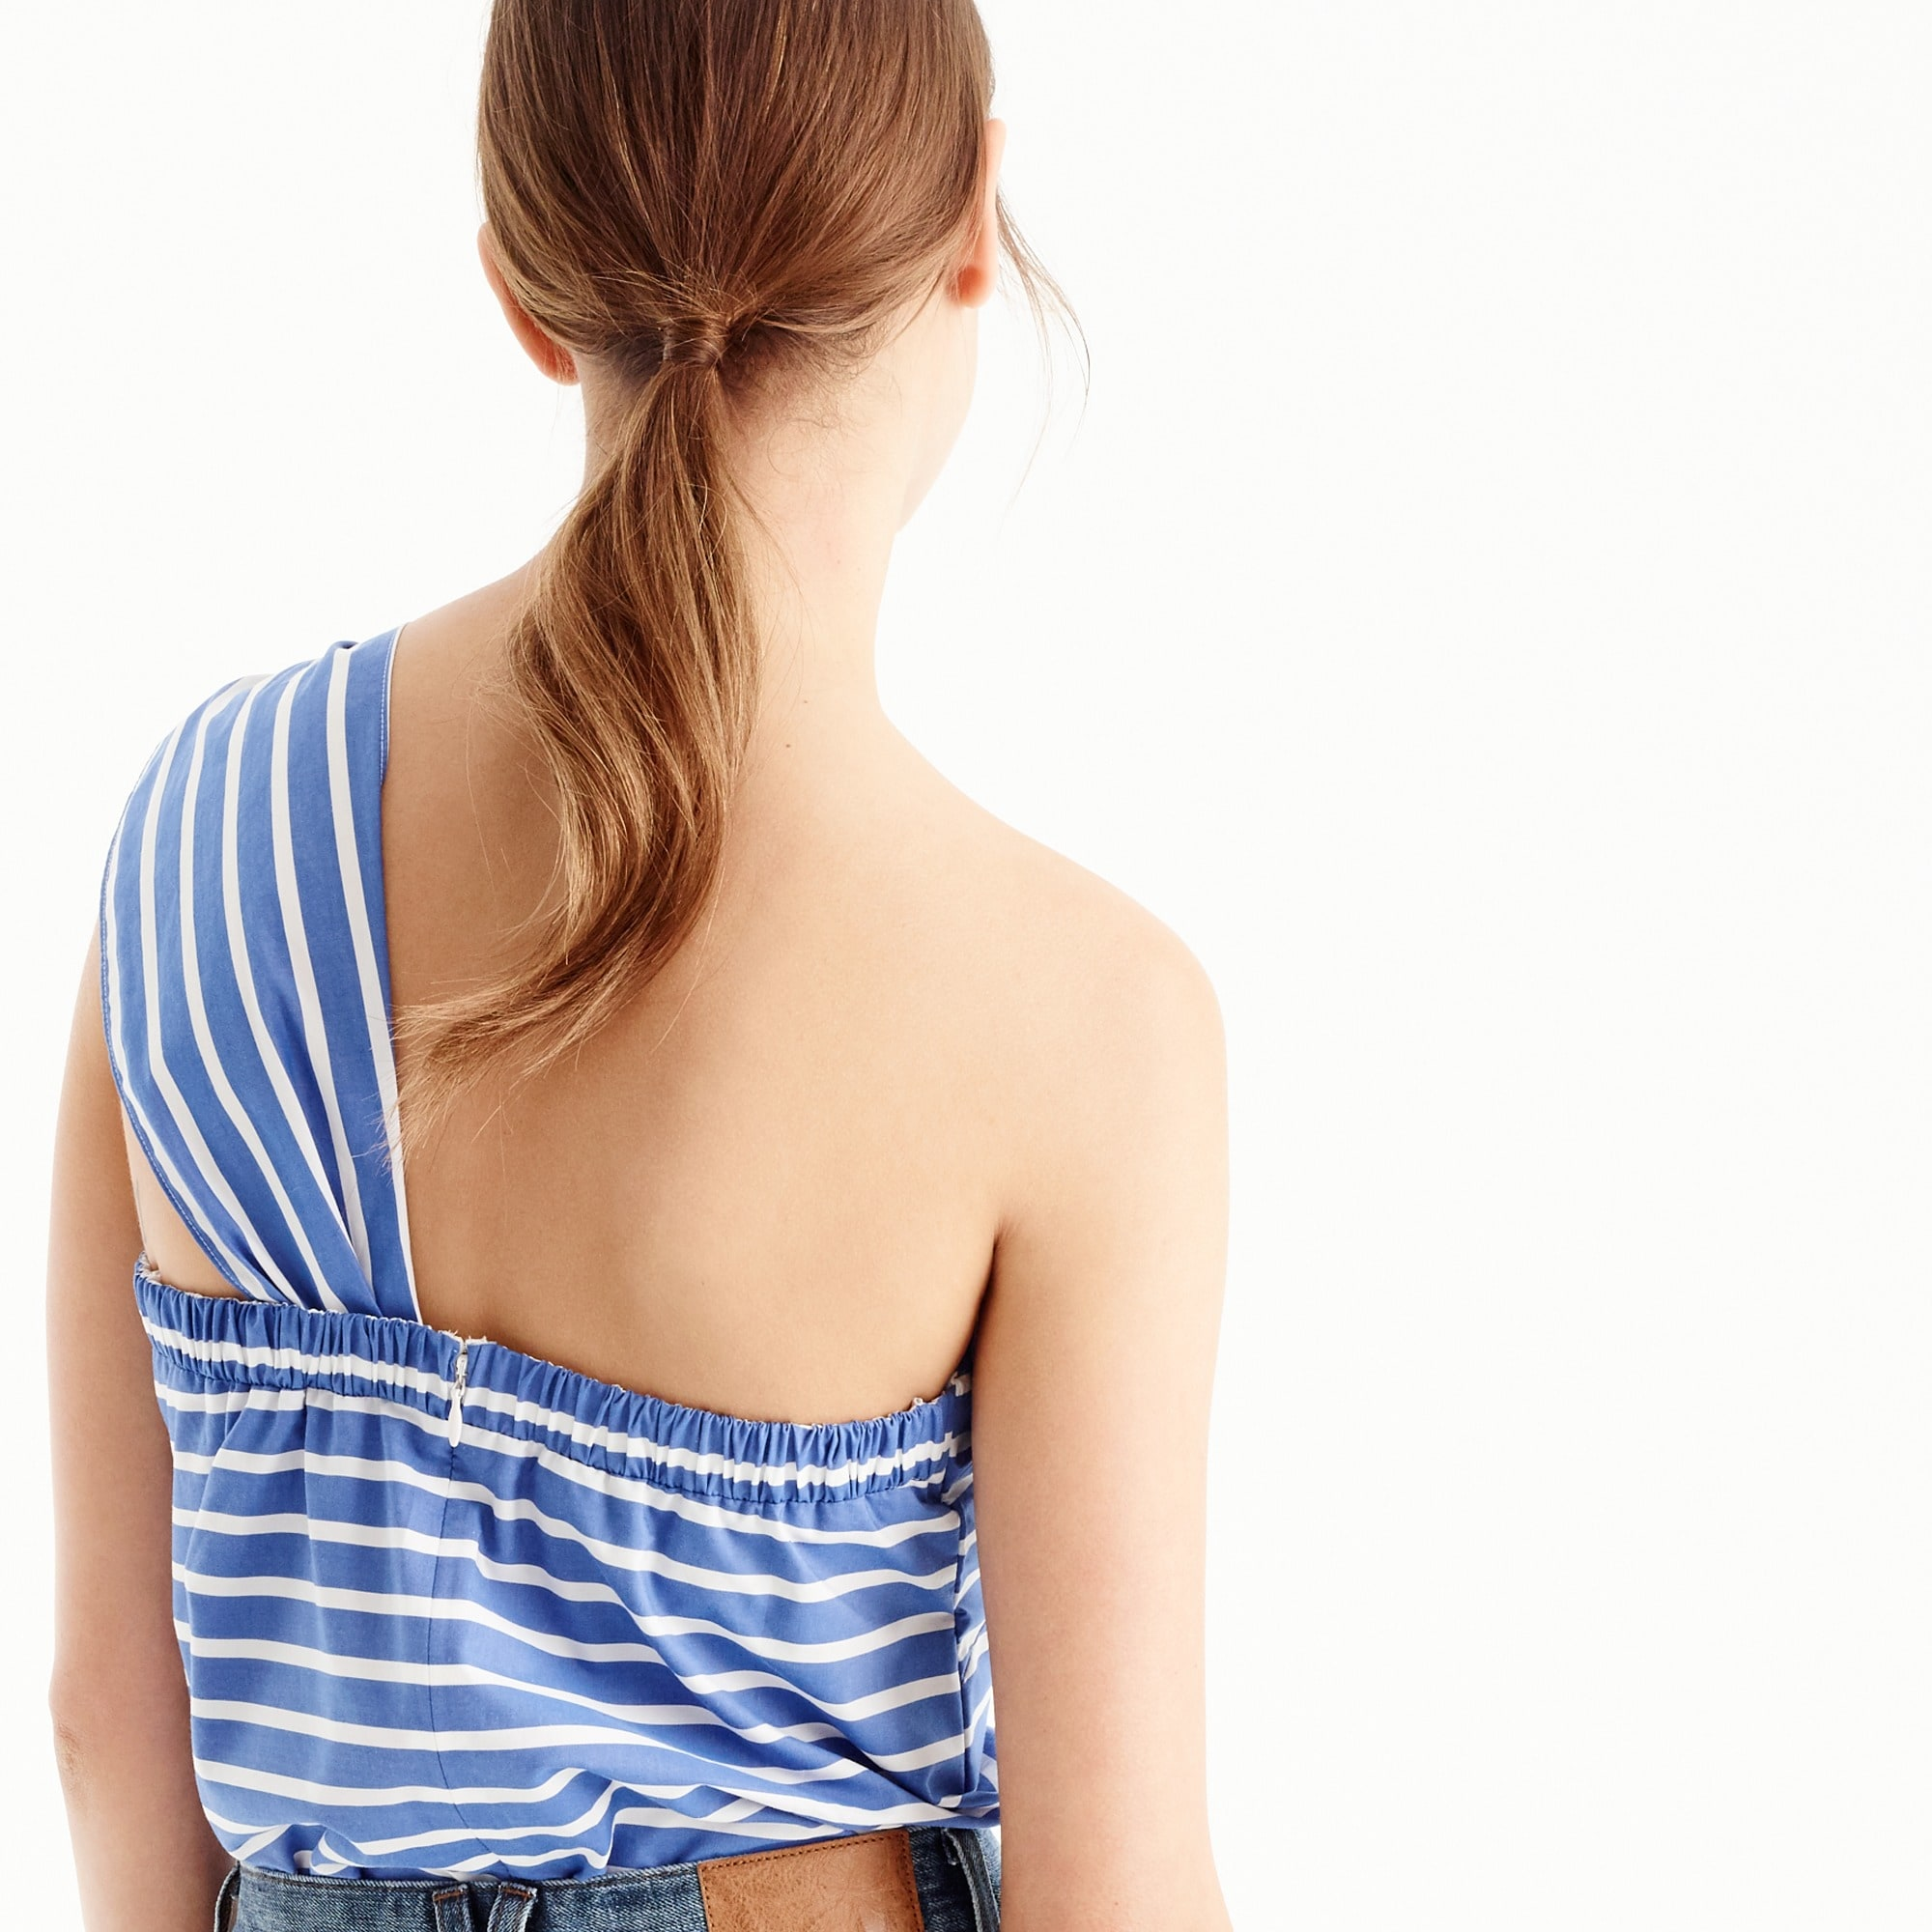 Image 3 for One-shoulder bow top in stripe